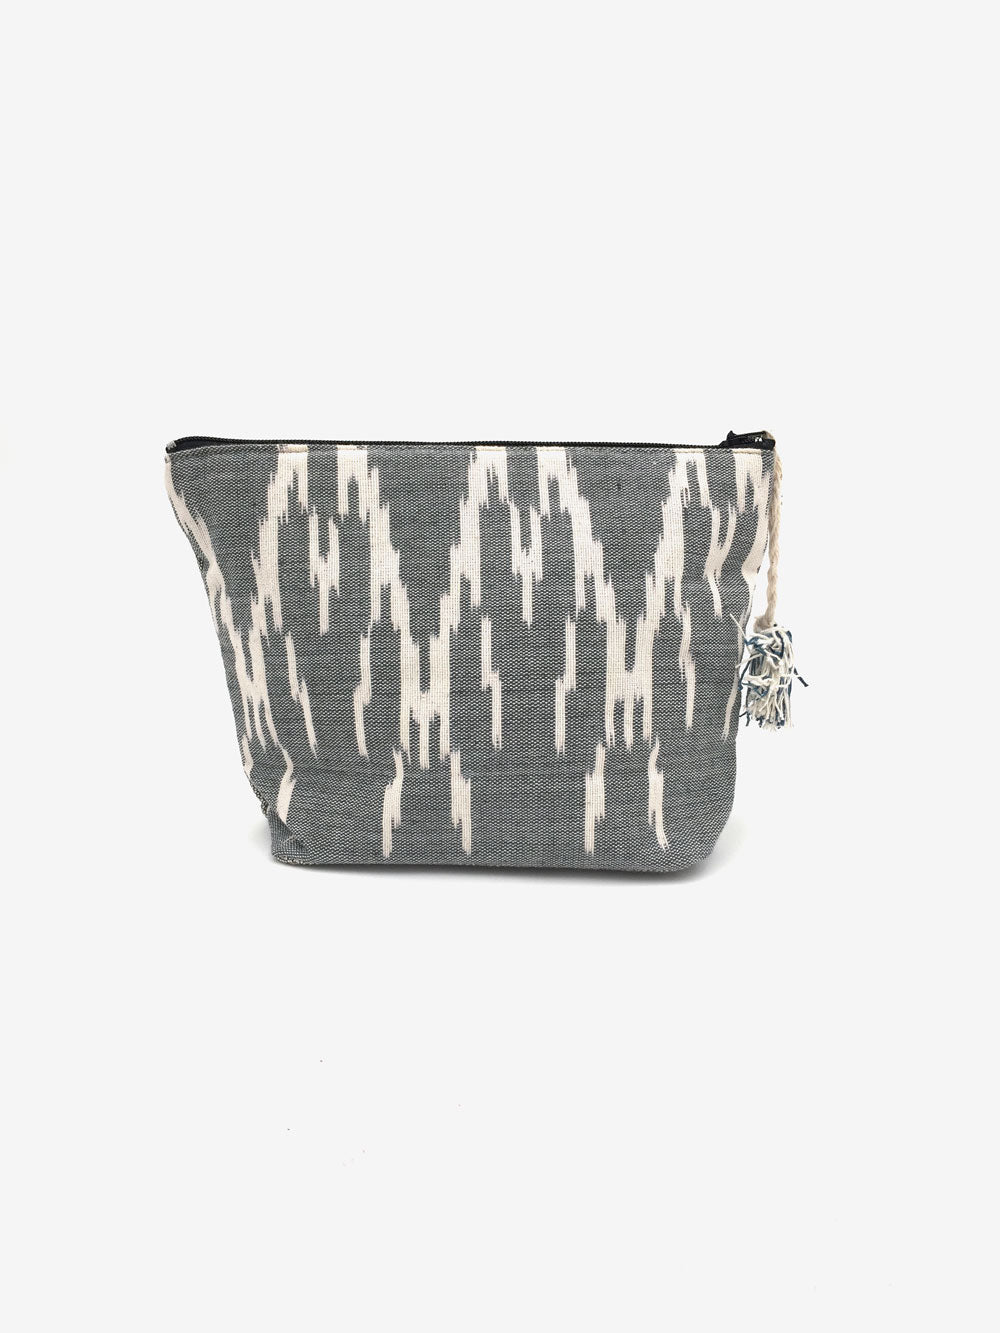 Handwoven Pouch in Charcoal Grey